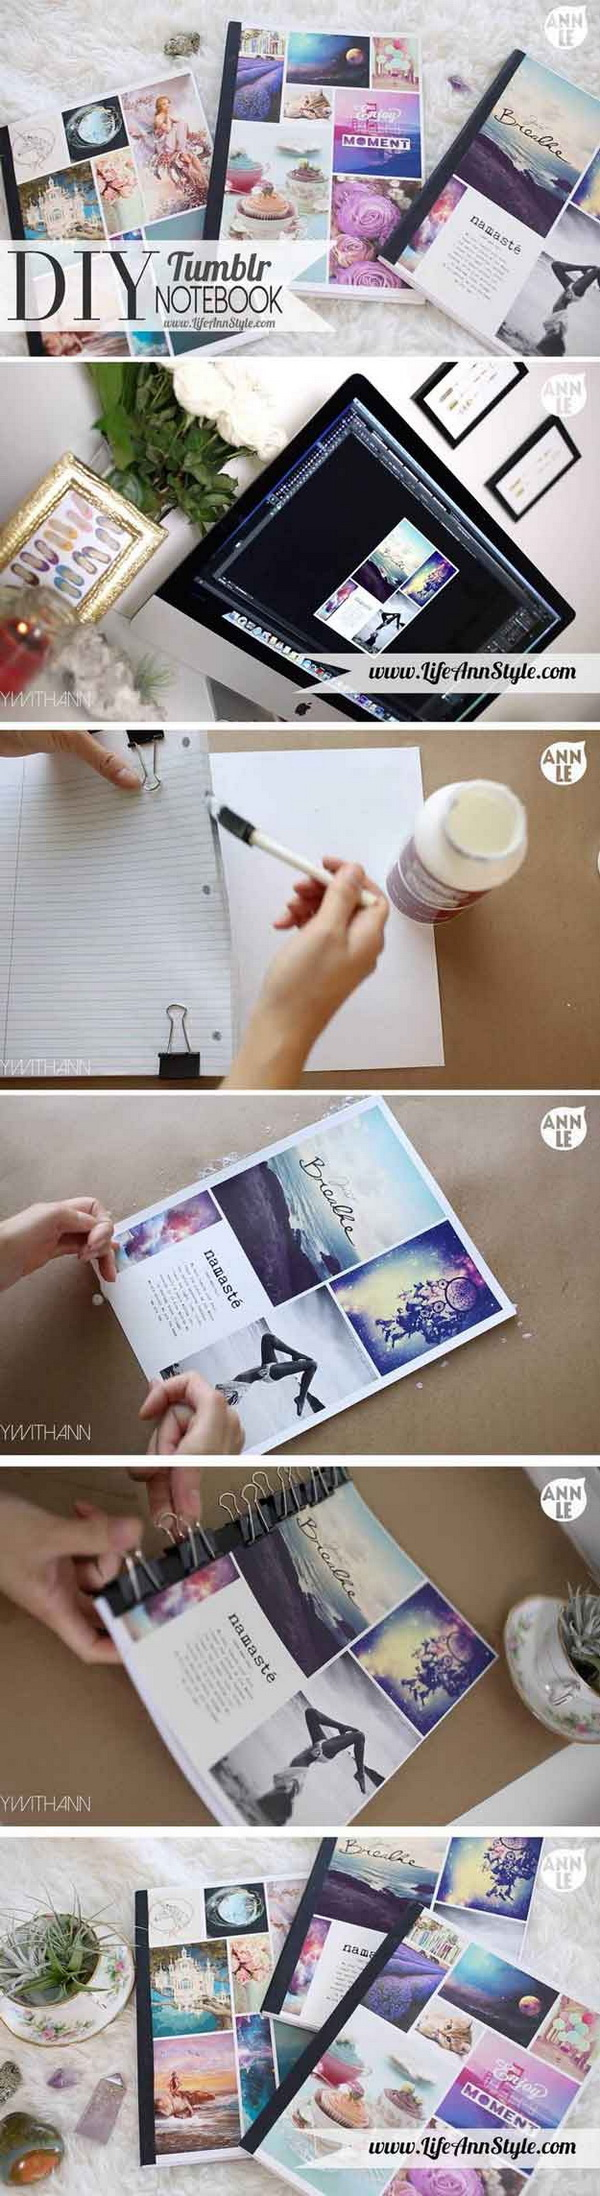 DIY Tumblr Notebook. Make your own cool notebooks and design it however way you want!